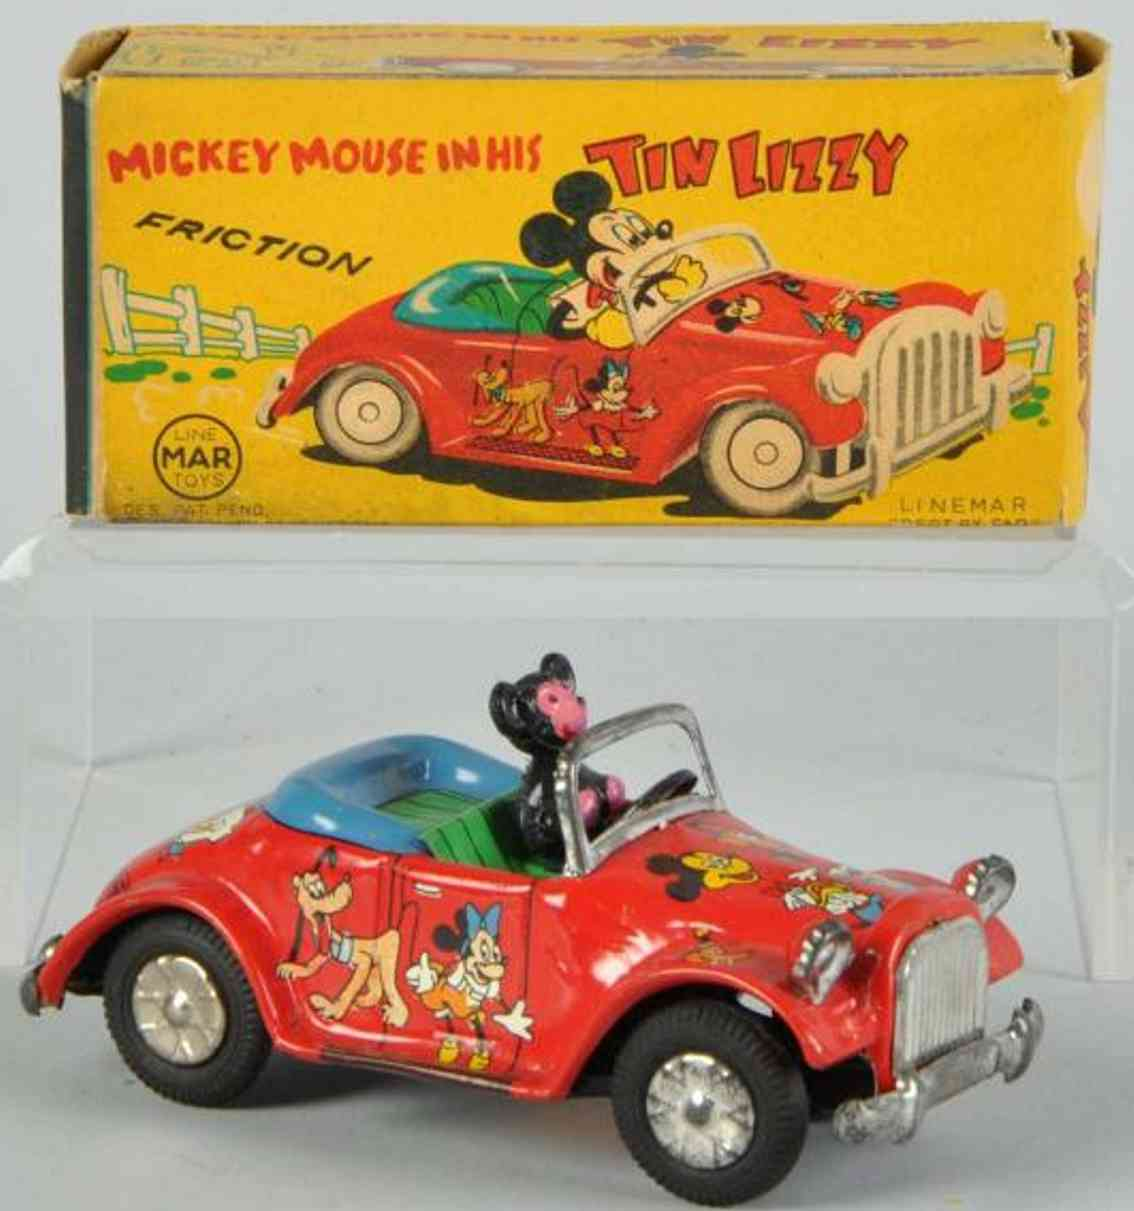 Linemar Mickey Mouse in his tin Lizzy